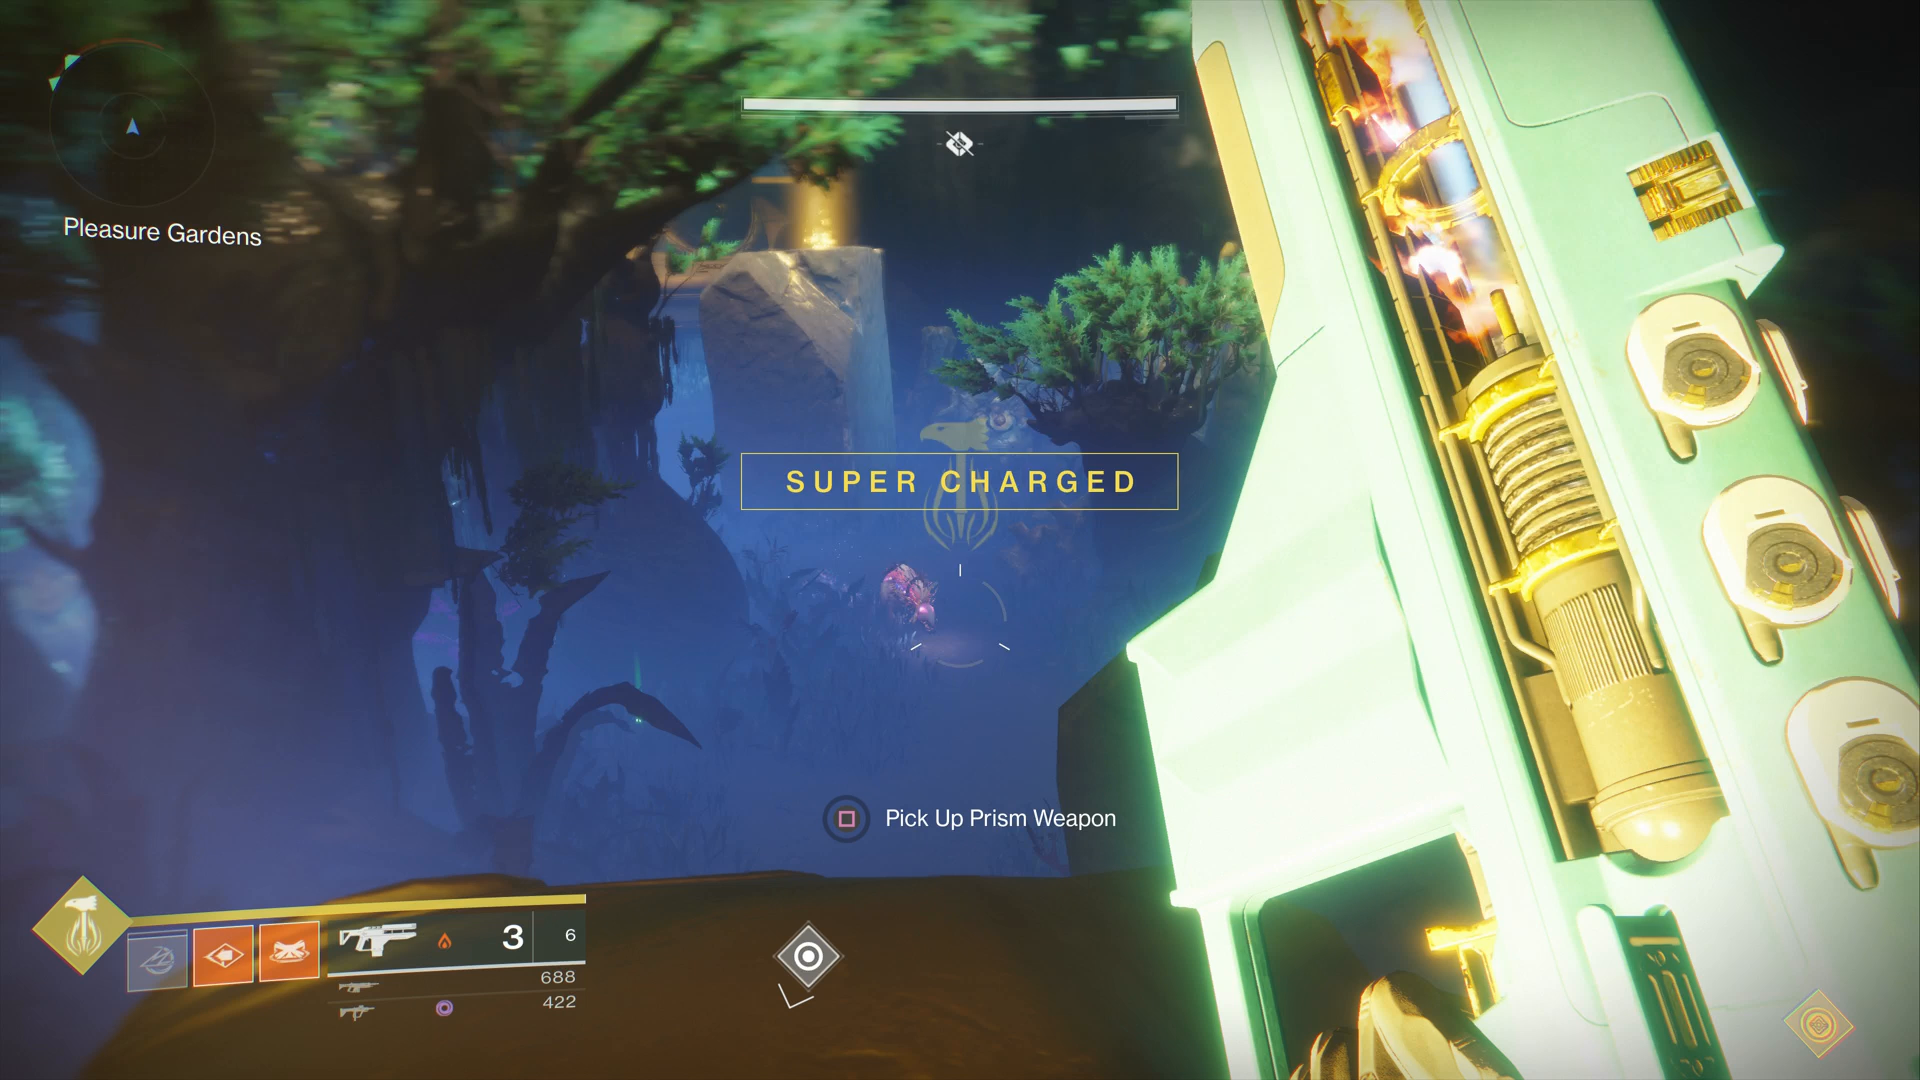 Destiny 2 Prestige Raid gets delay, says Bungie